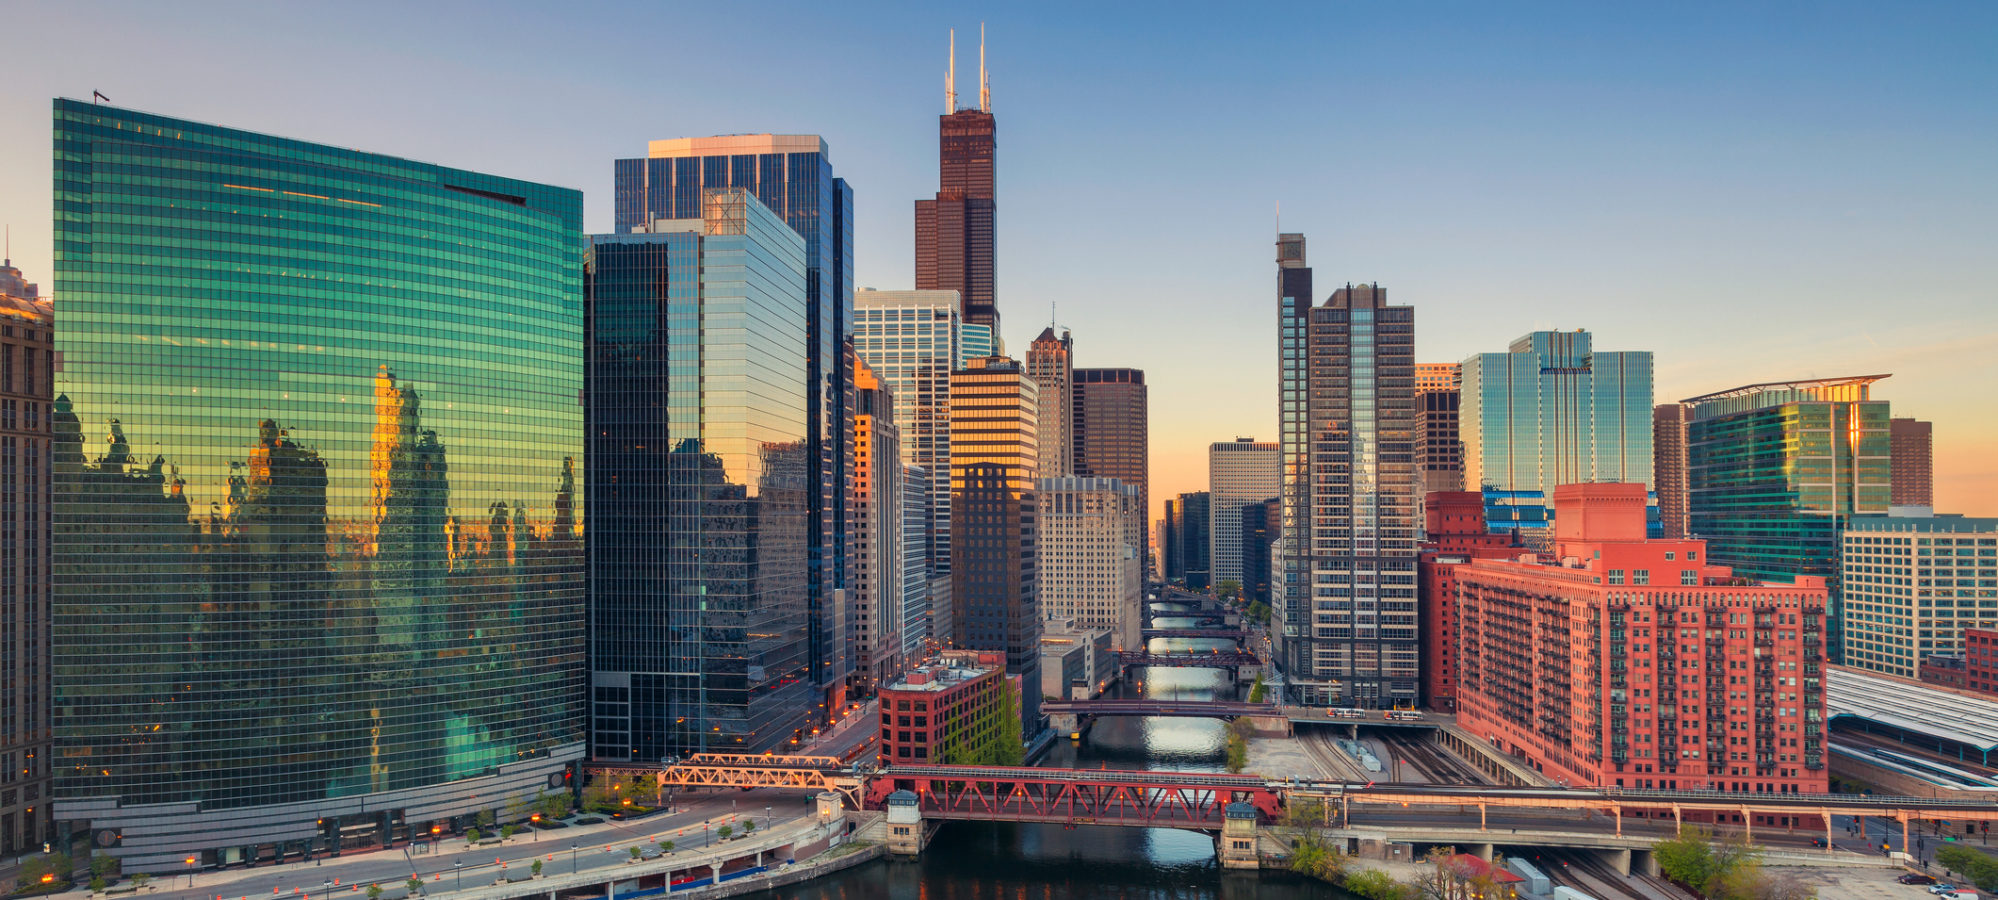 Cityscape of downtown Chicago, Illinois